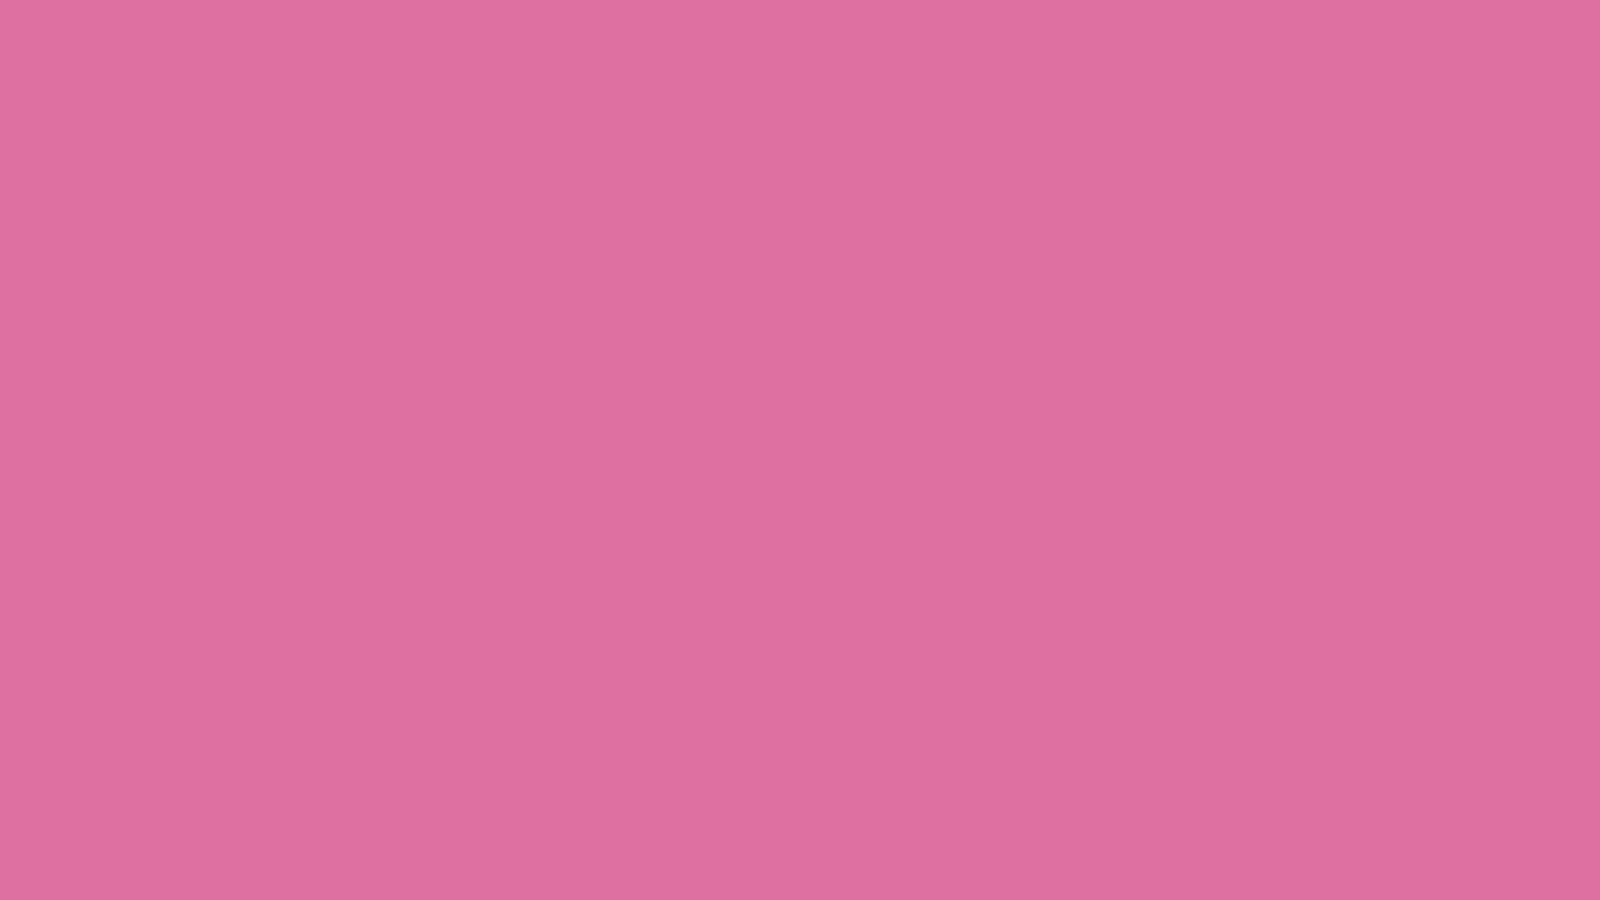 1600x900 Thulian Pink Solid Color Background